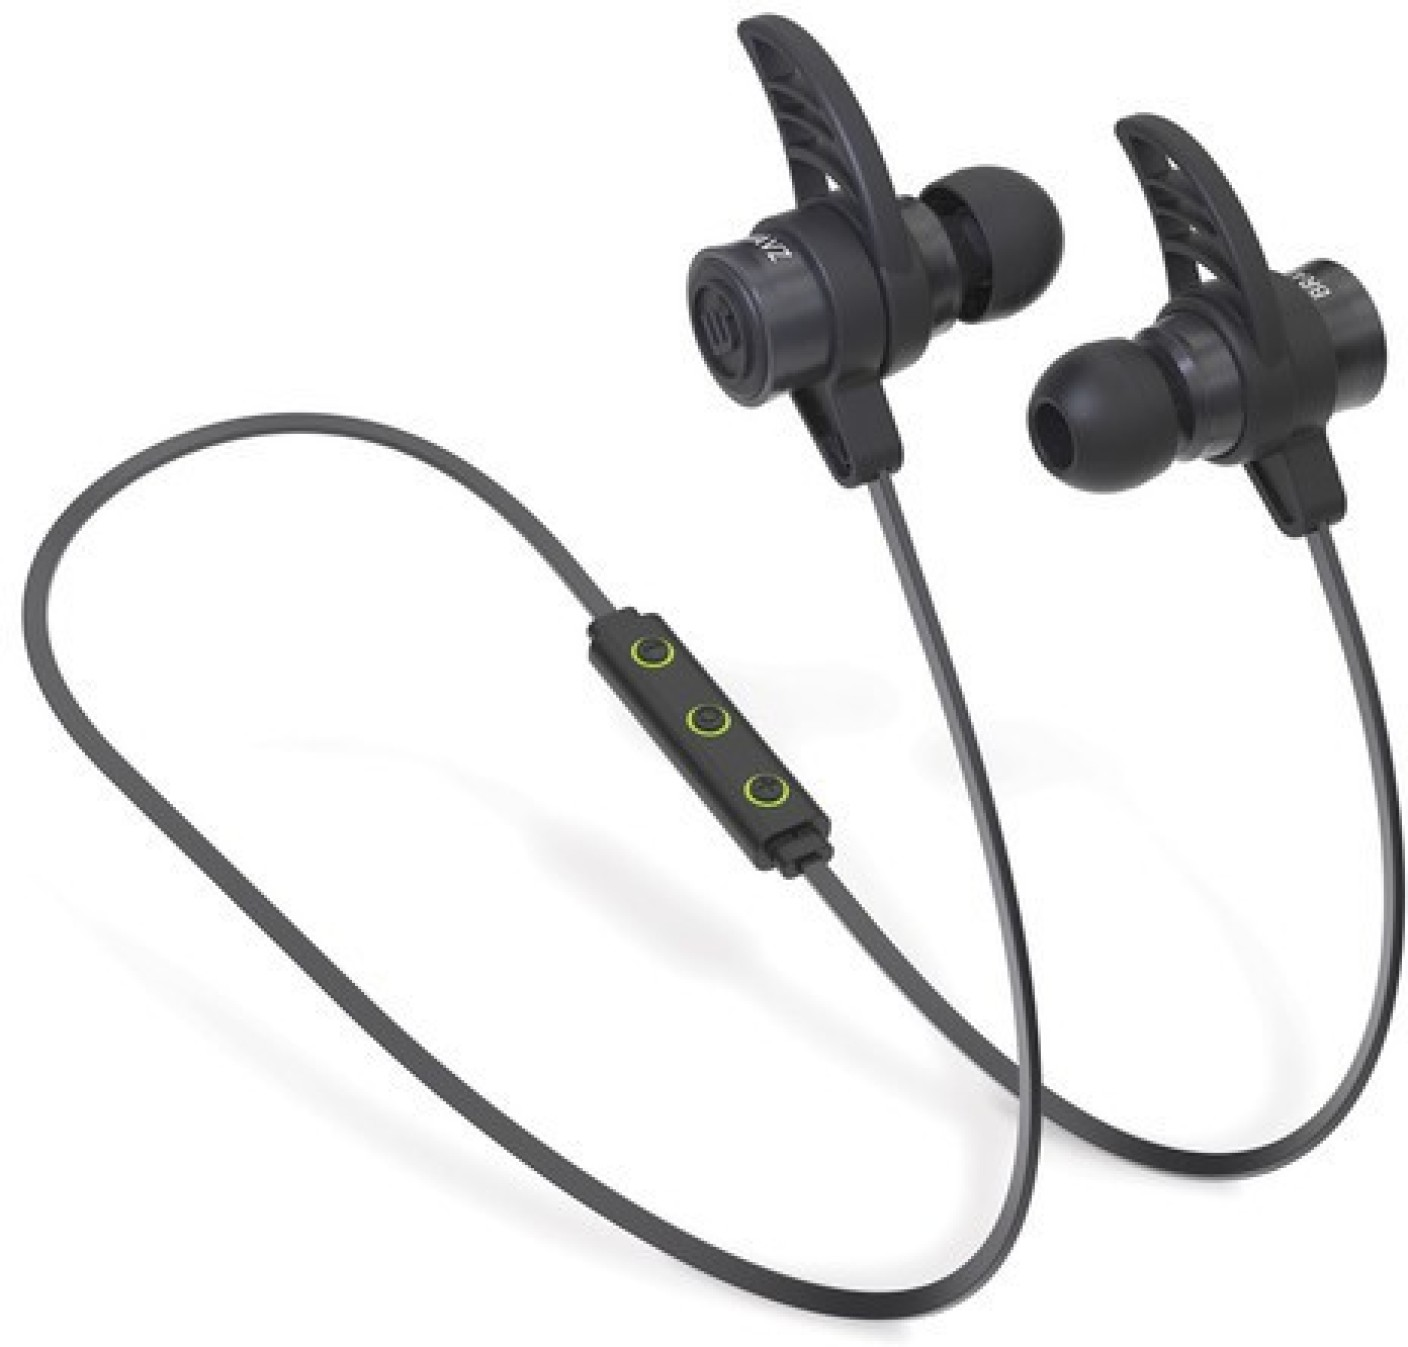 Brainwavz BLU-200 Noise Isolating In-Ear Earbuds Sport Bluetooth Headset With Mic Price In India